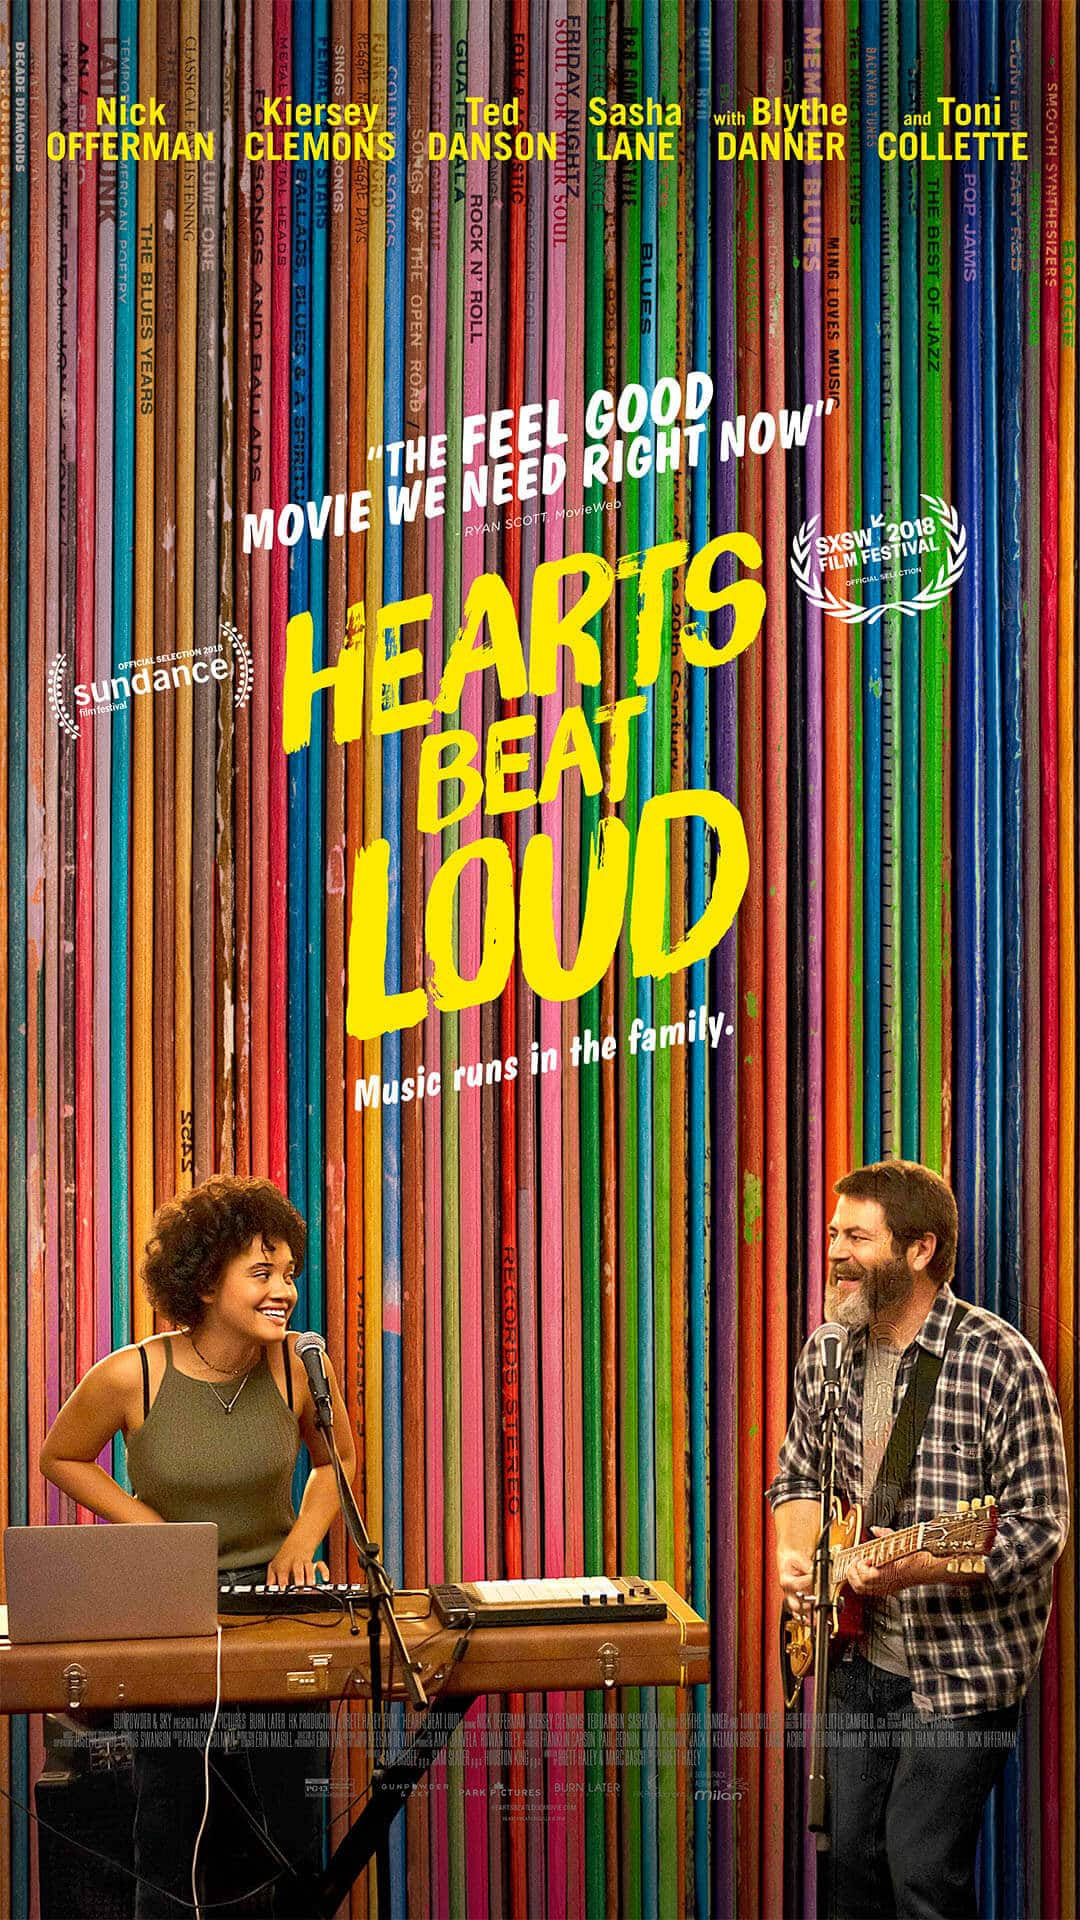 hearts beat loud, cinematographe